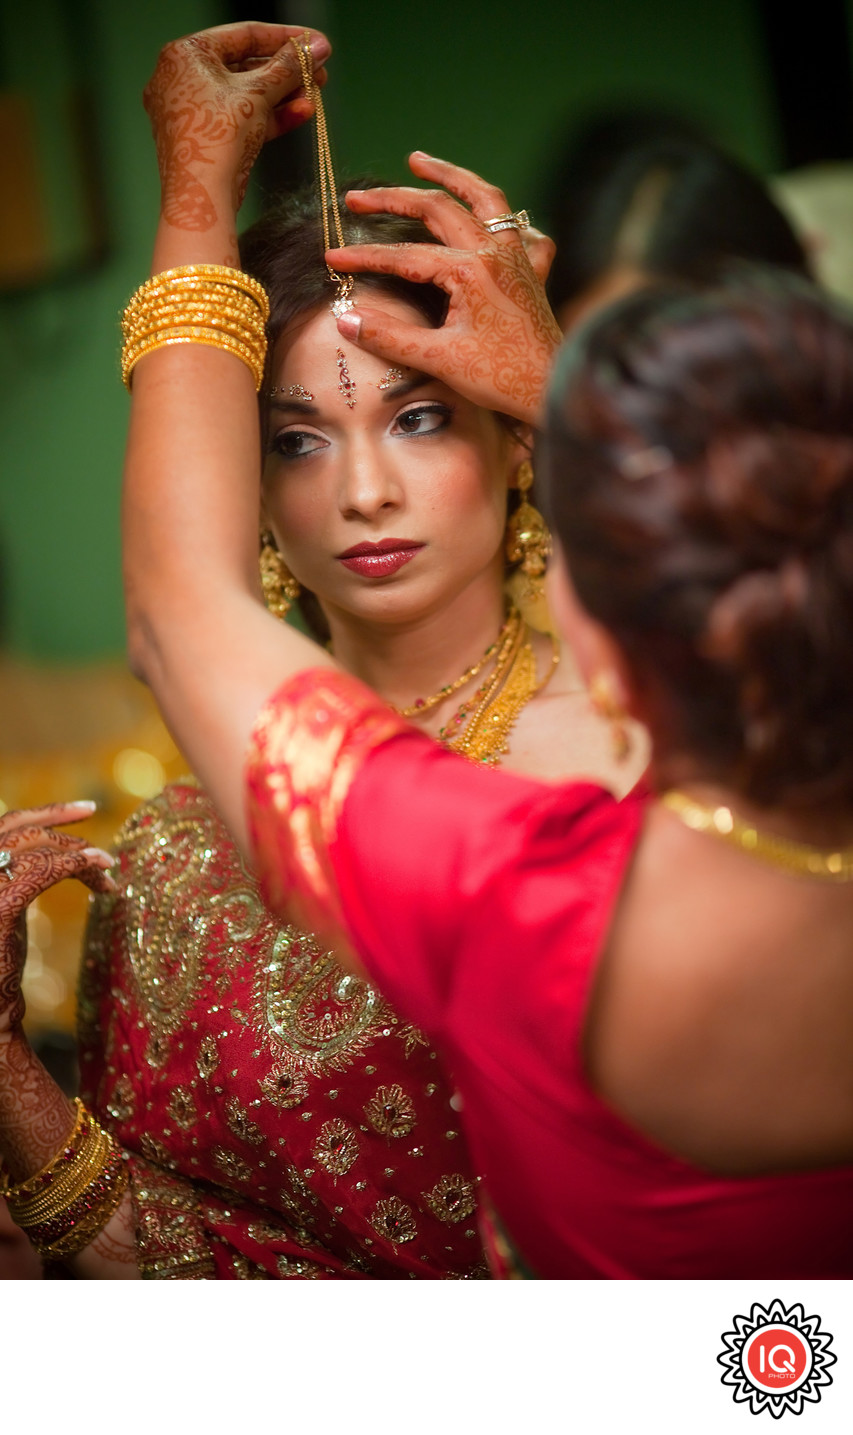 Indian Bride Preparing